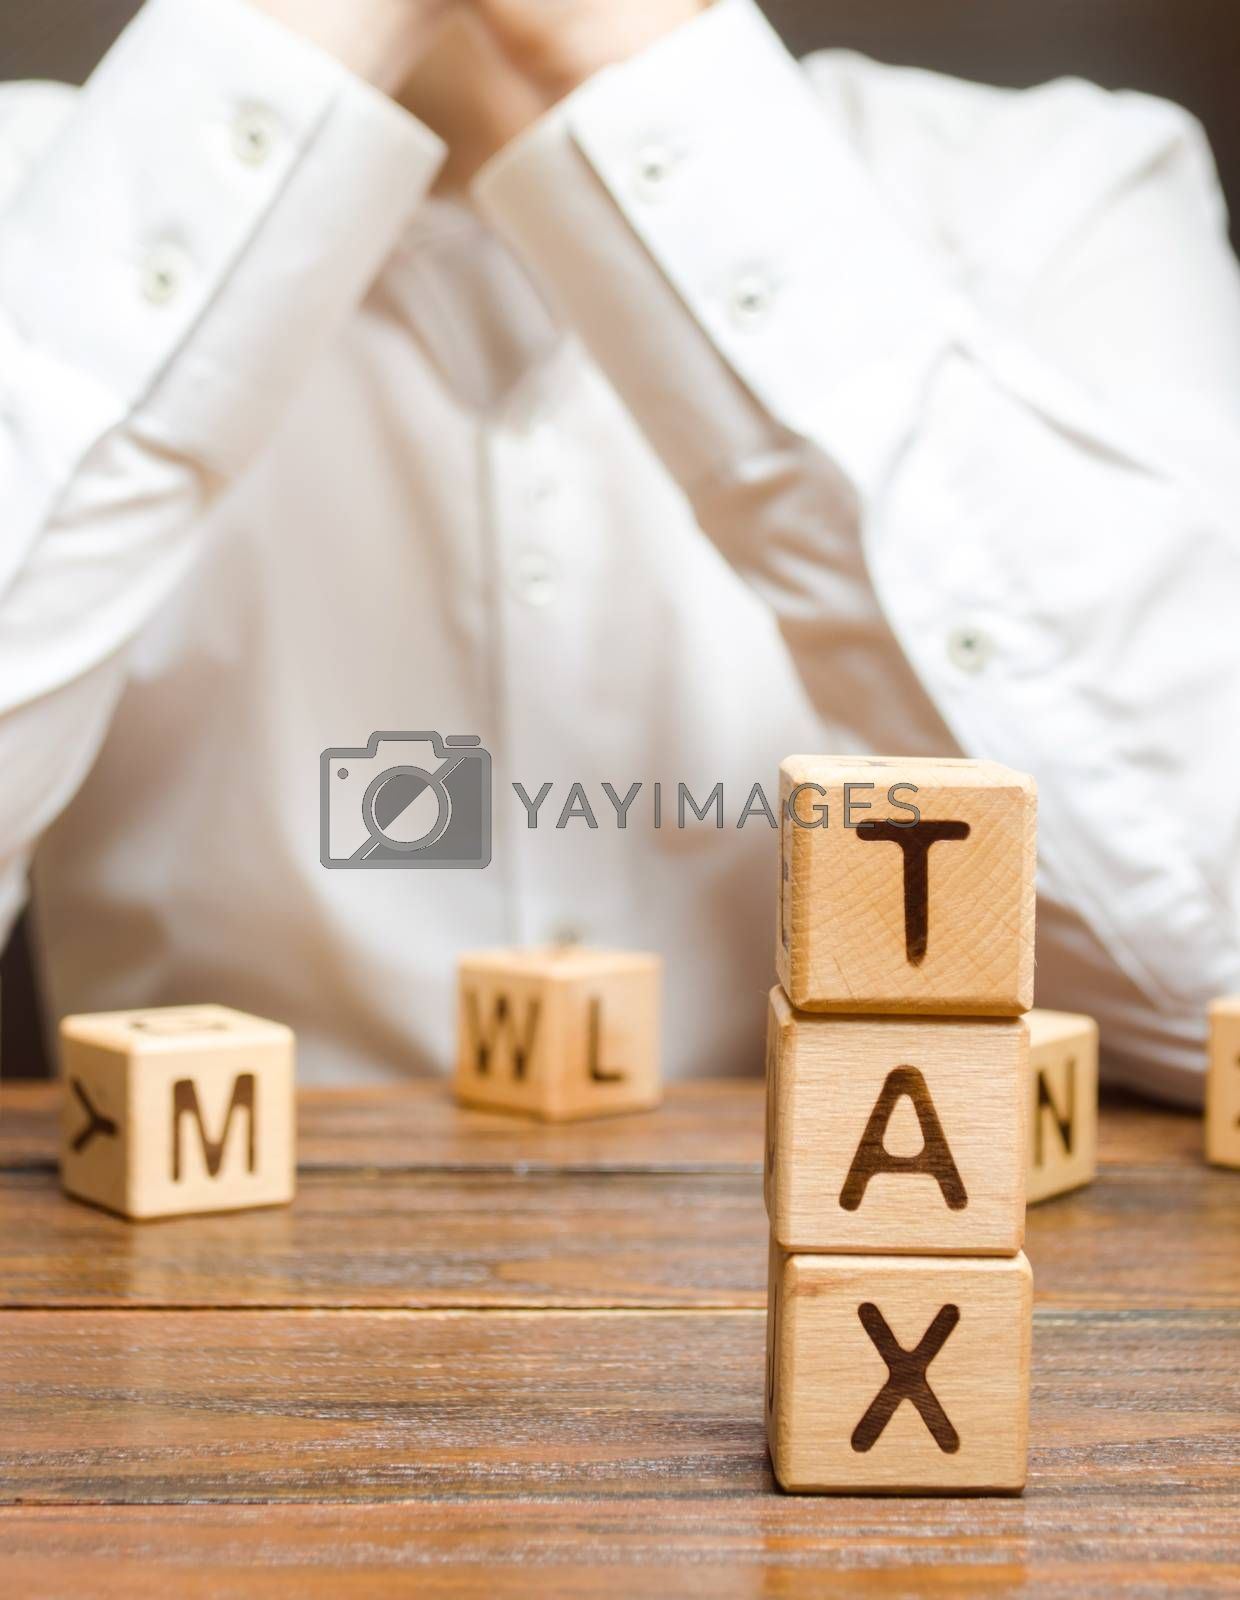 Businessman ponders the process of paying taxes and tax refunds. Tax holidays and benefits. Creating an enabling environment for business and economic growth. Protection of business and industry. by iLixe48